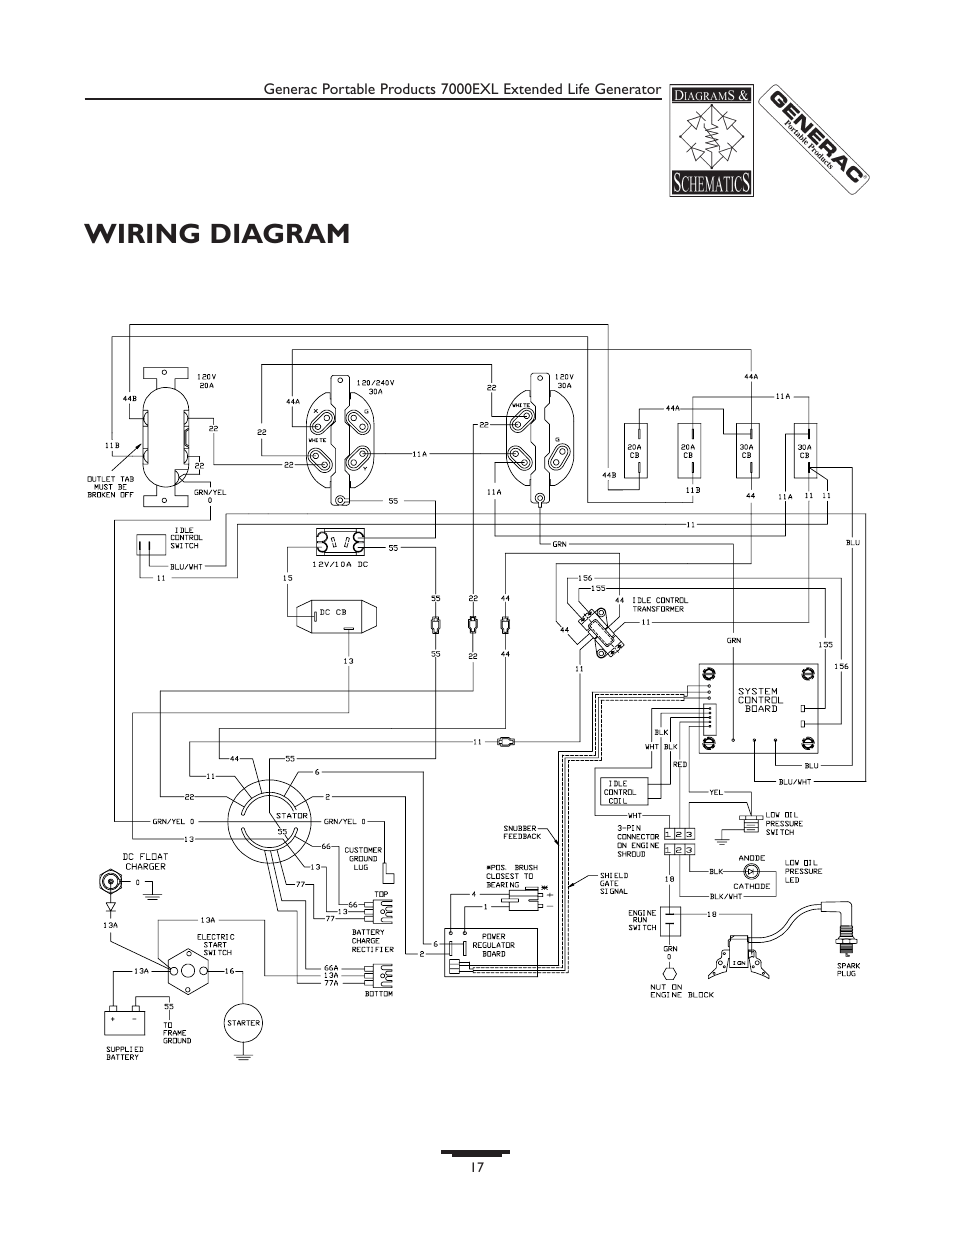 samsung dcs 24 wiring diagram